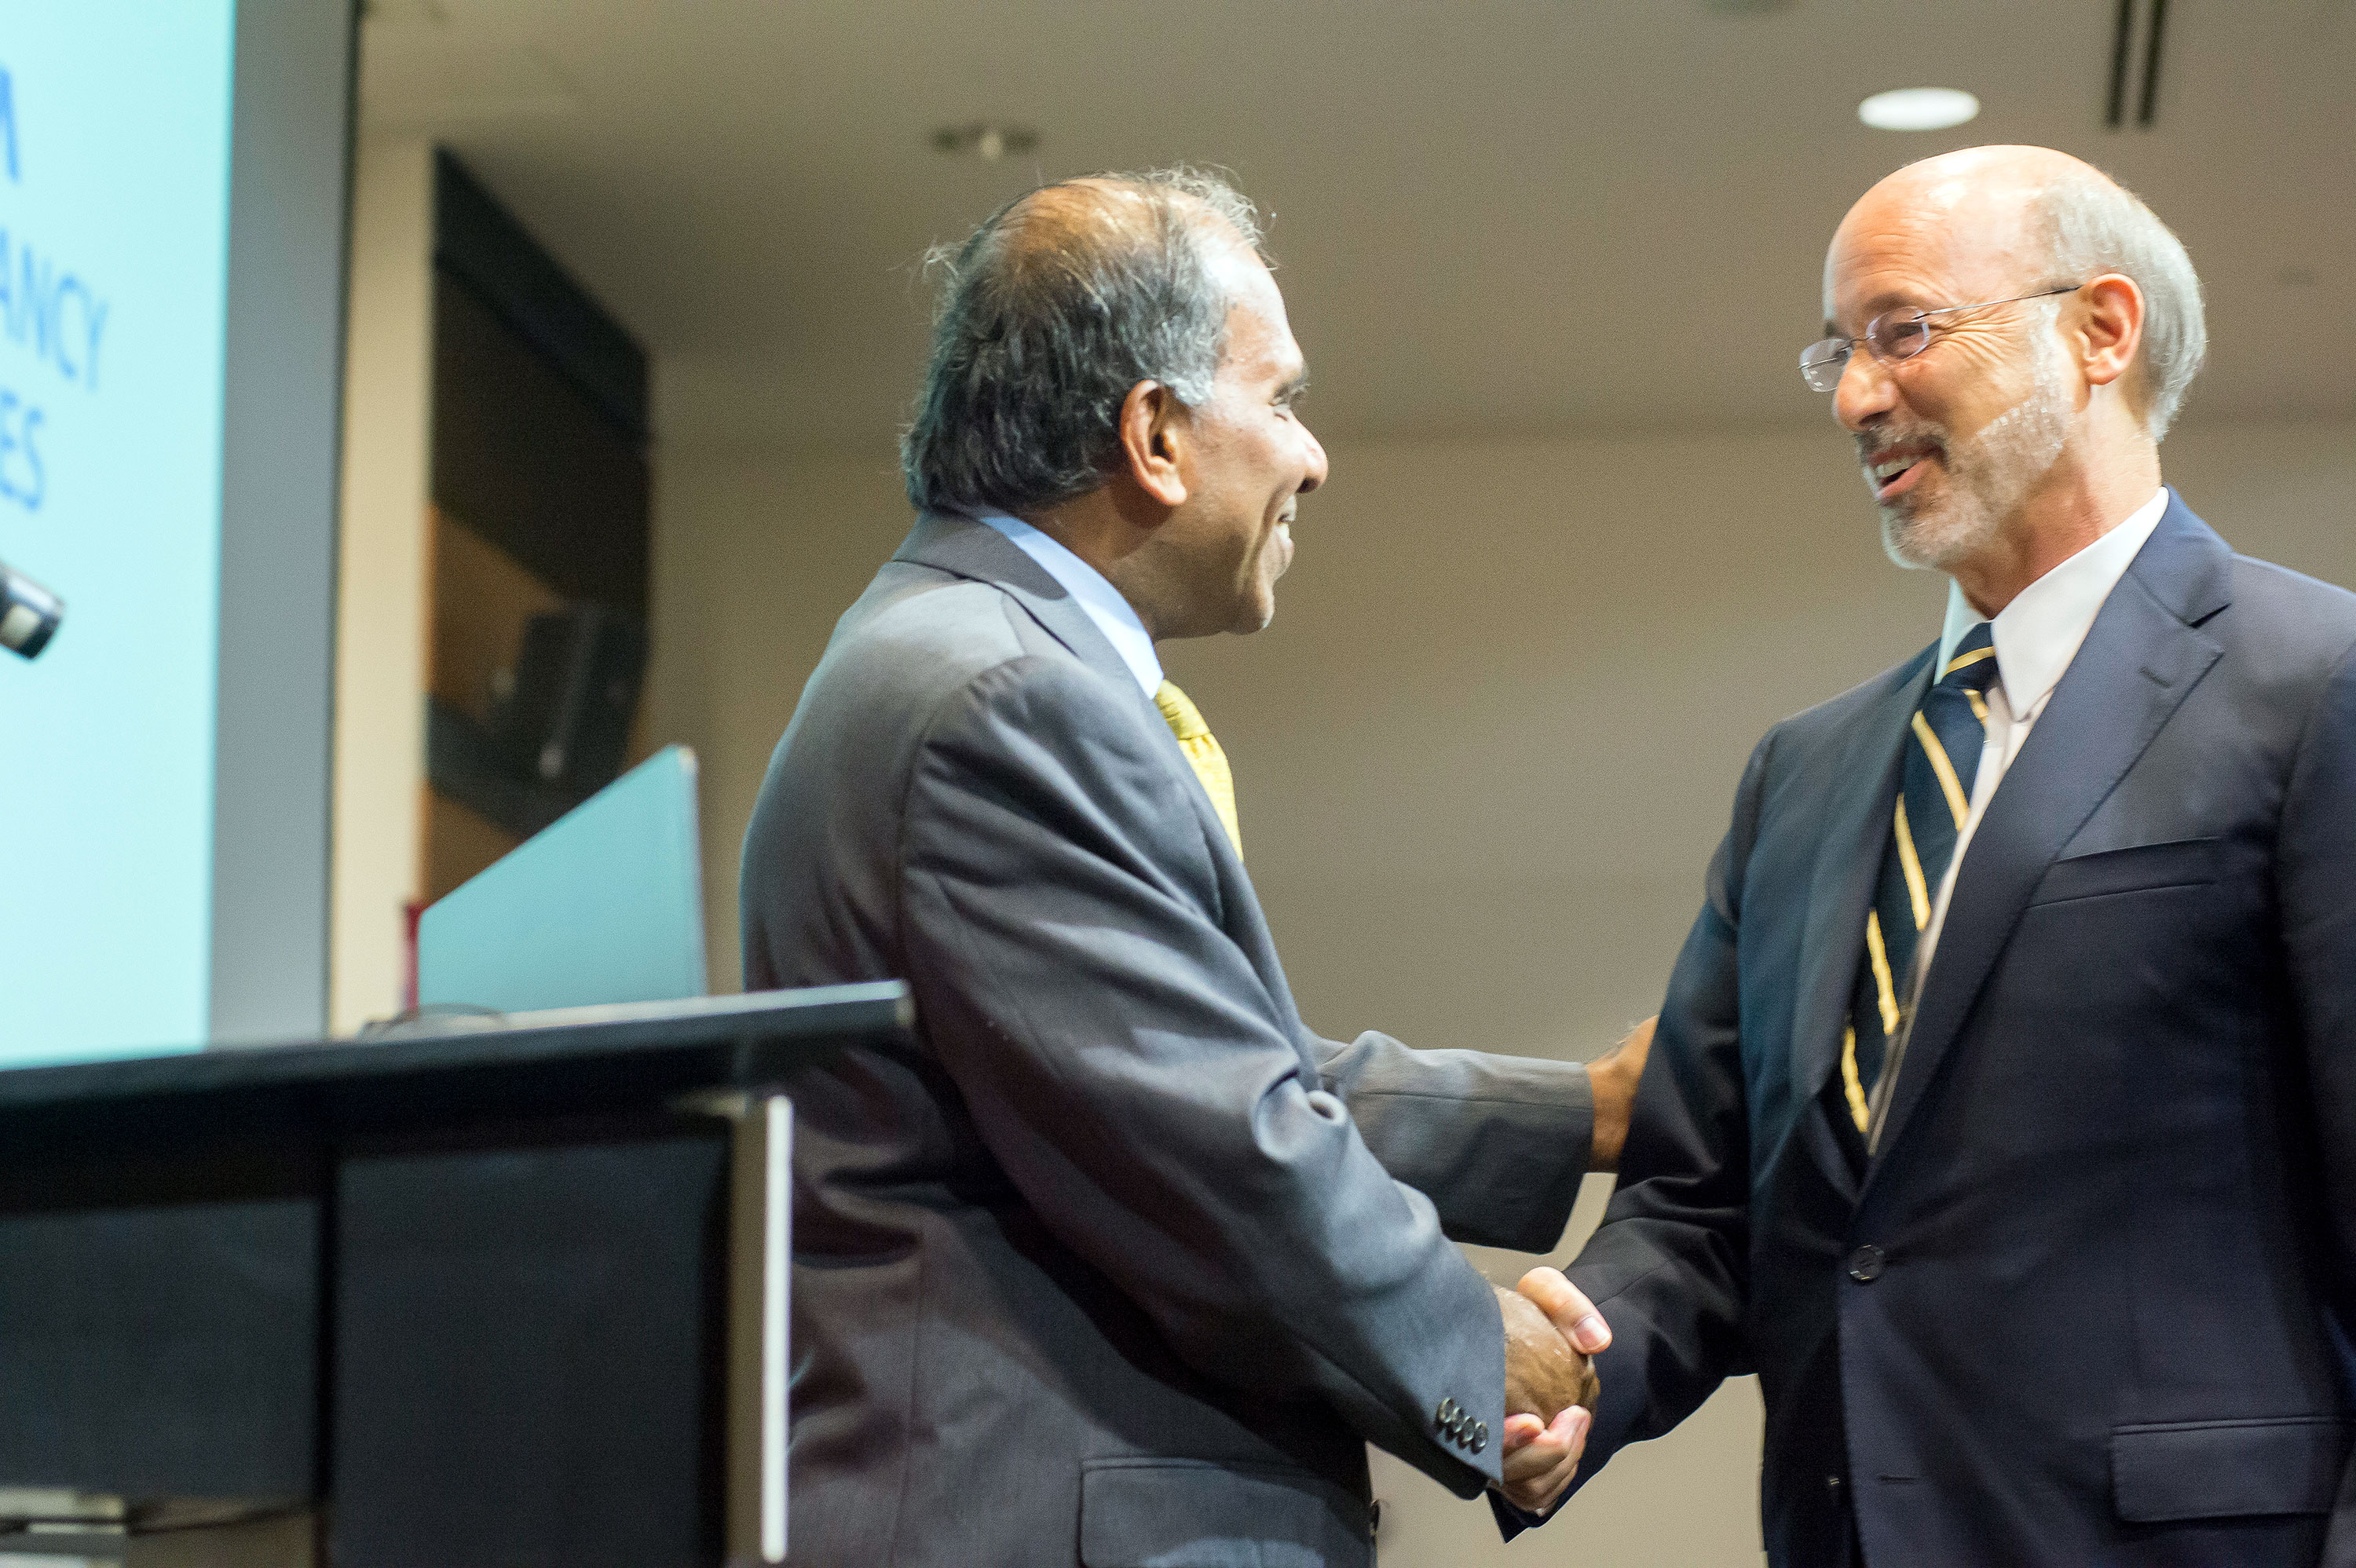 Governor Tom Wolf and Subra Suresh shake hands. (credit: Courtesy of Carnegie Mellon University)